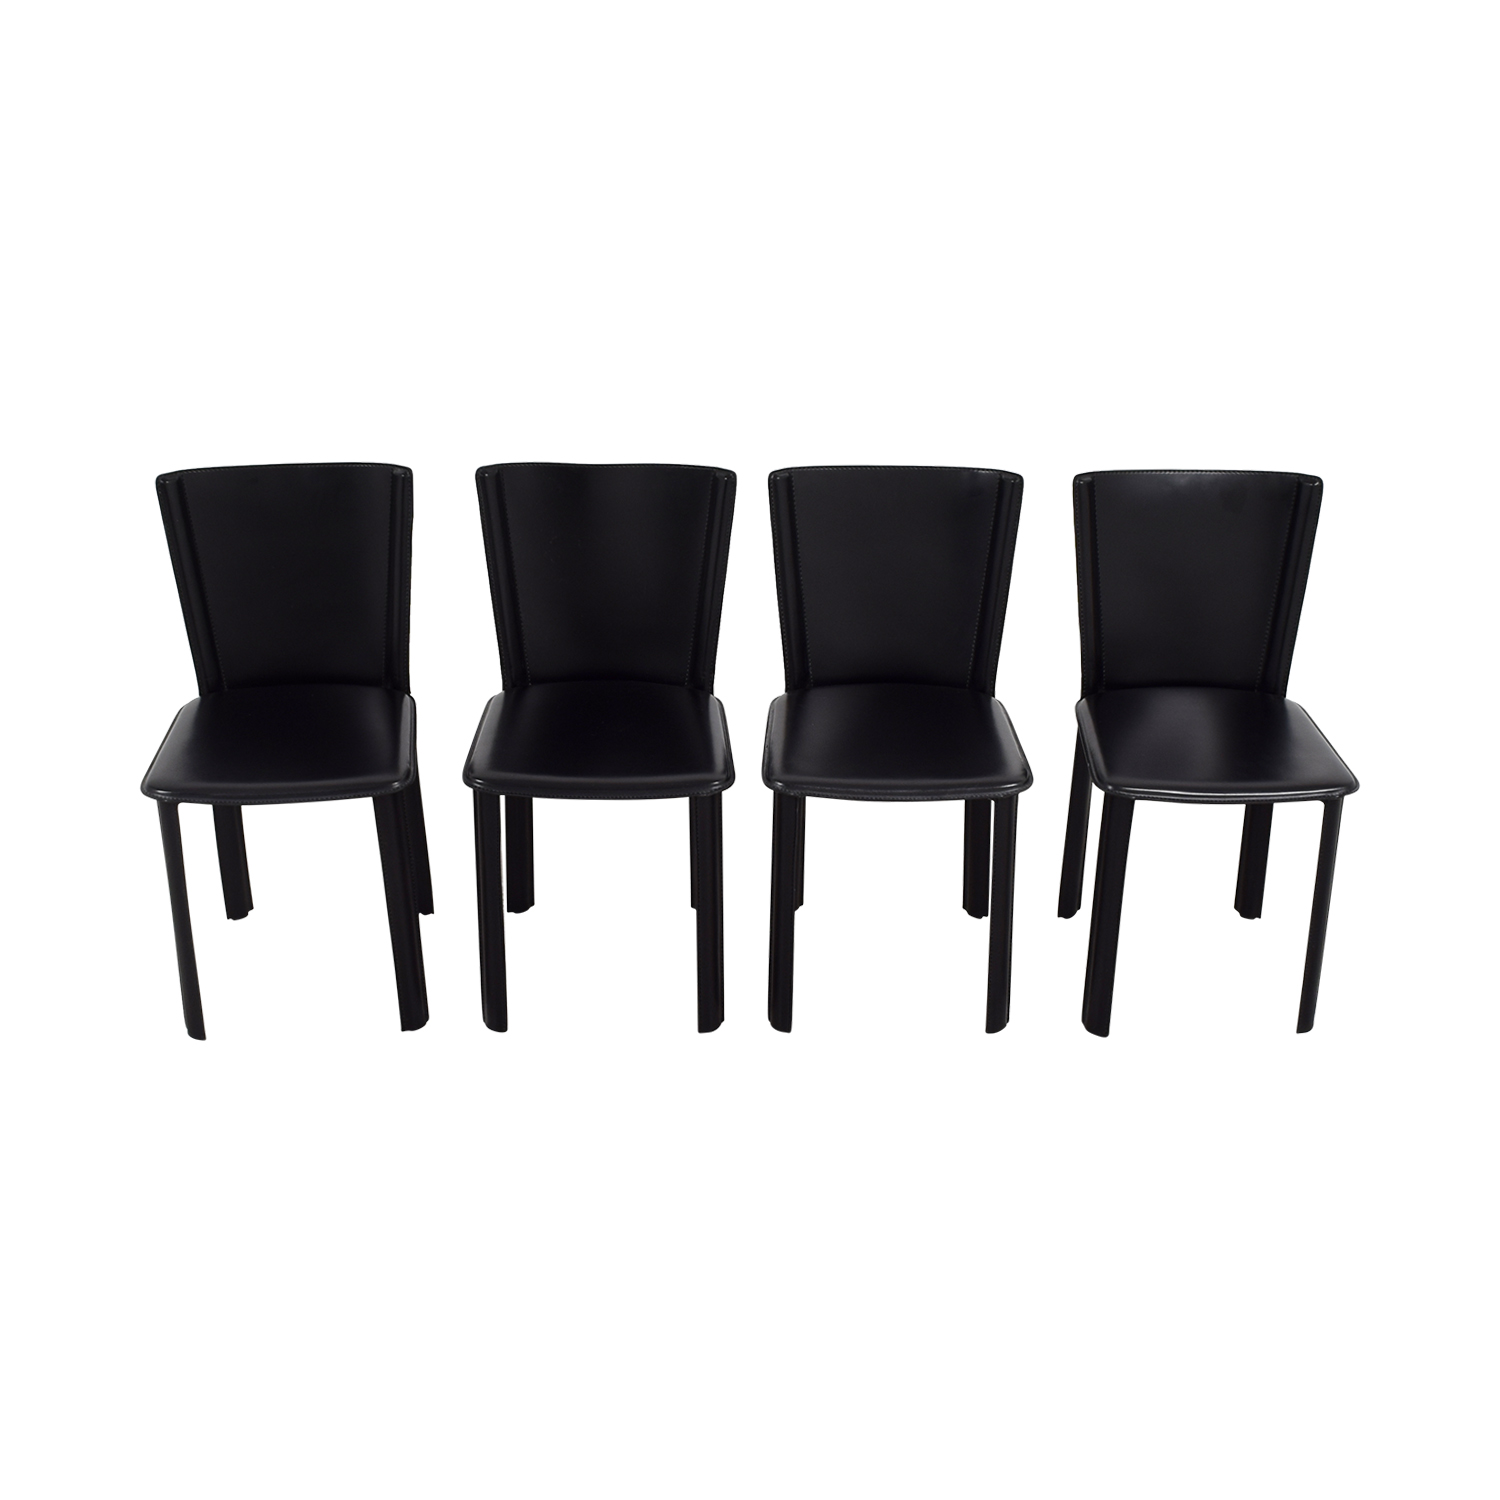 Design Within Reach Design Within Reach Allegro Black Dining Chairs discount